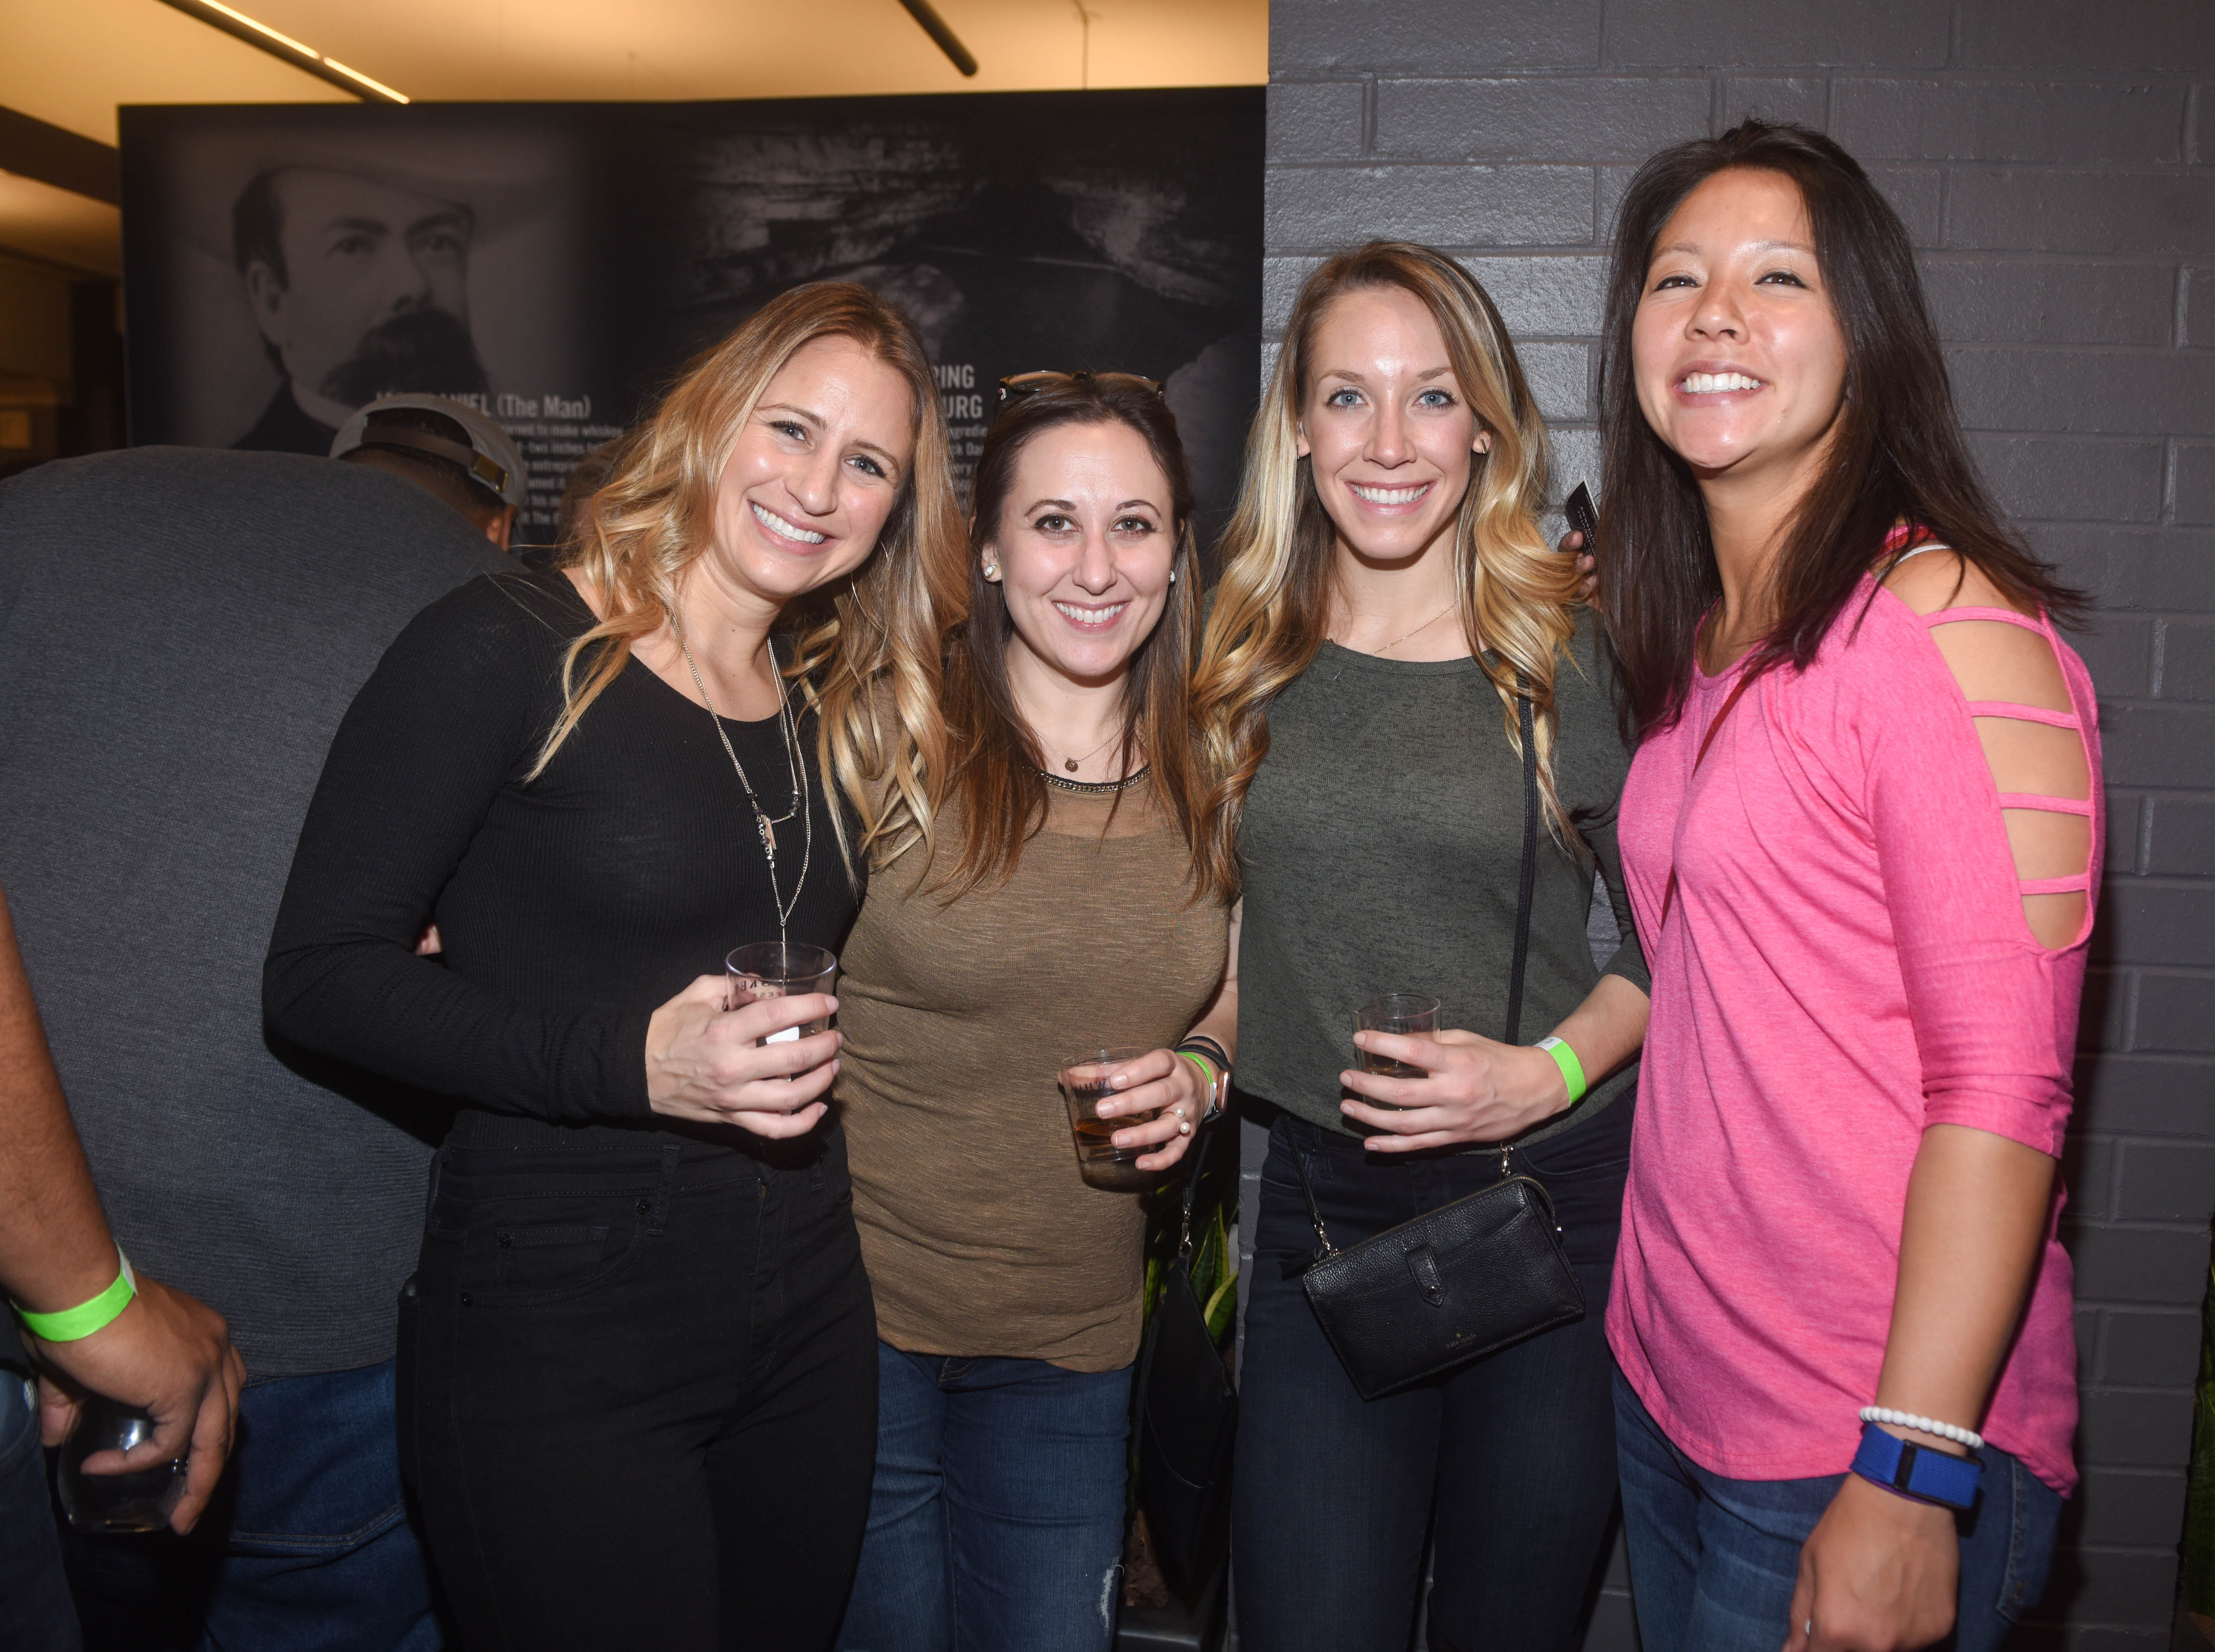 Brooke, Katie, Stephanie and Allison. Jersey City Whiskey Fest was held at Harborside Atrium. The event featured over 100 styles of whiskey and spirits. 02/01/2019